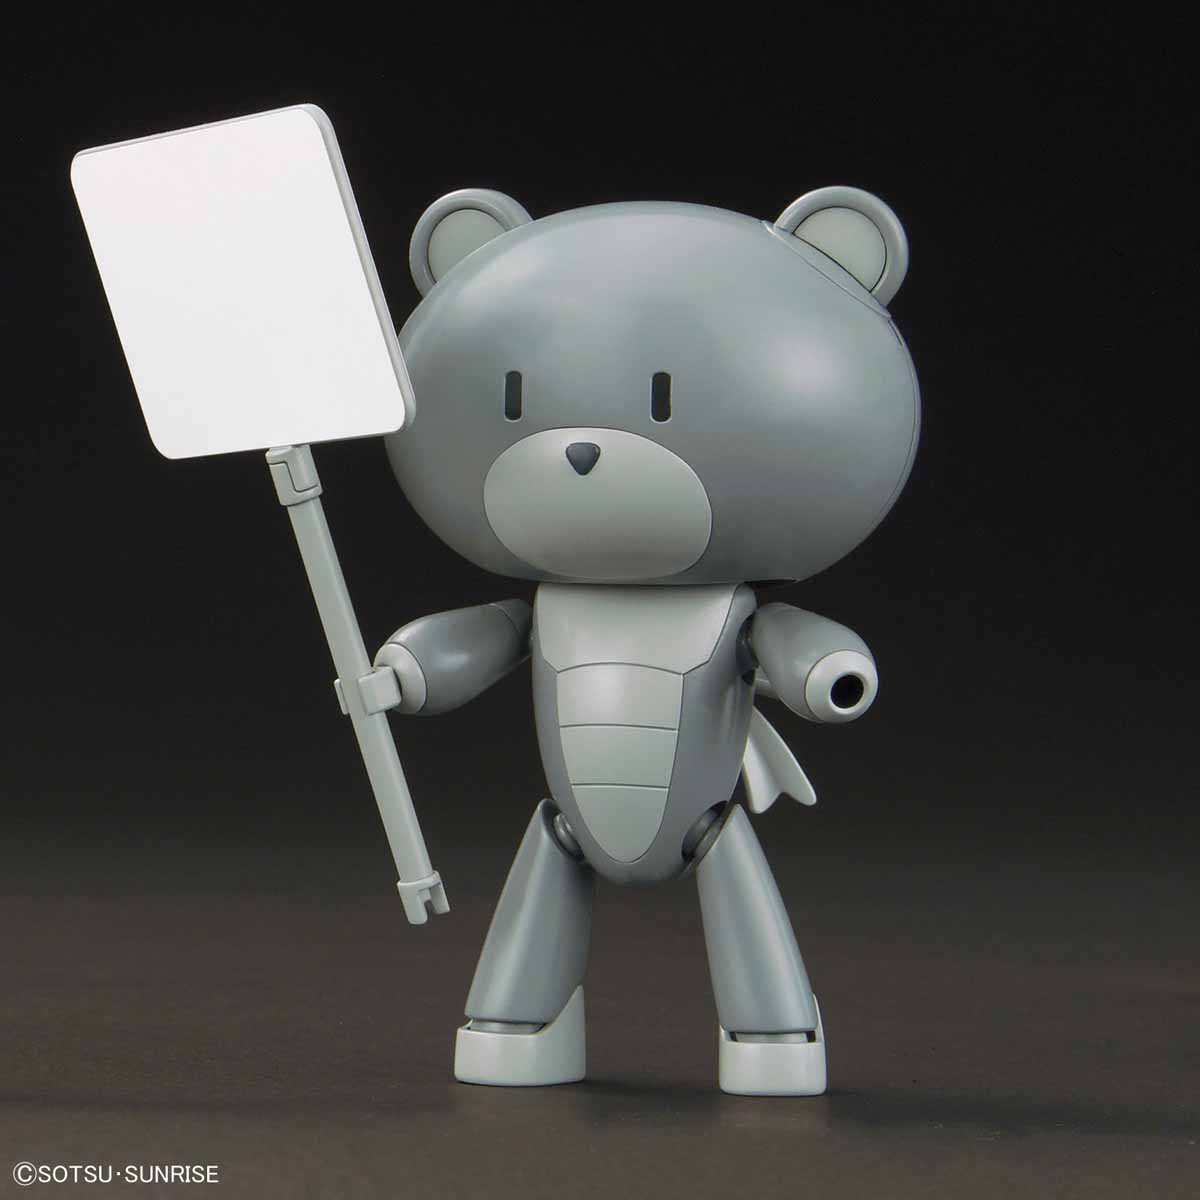 44417HGPG 1/144 プチッガイ サフェーサーグレー&プラカード [Petit'gguy Surfacer Grey and Placard]